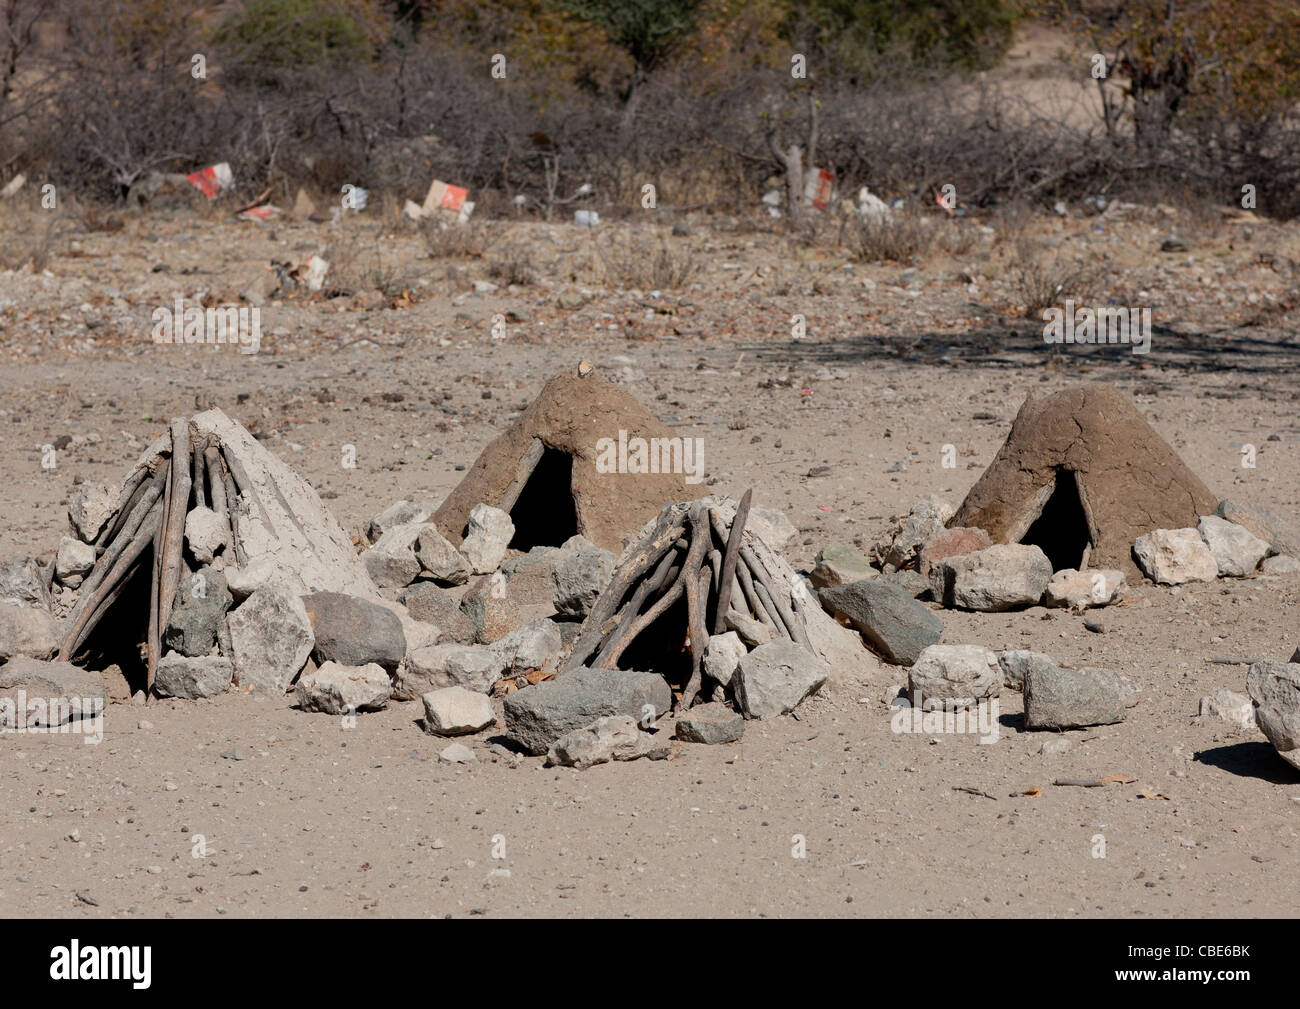 Muhimba Shelters For Chicken, Village Of Elola, Angola - Stock Image